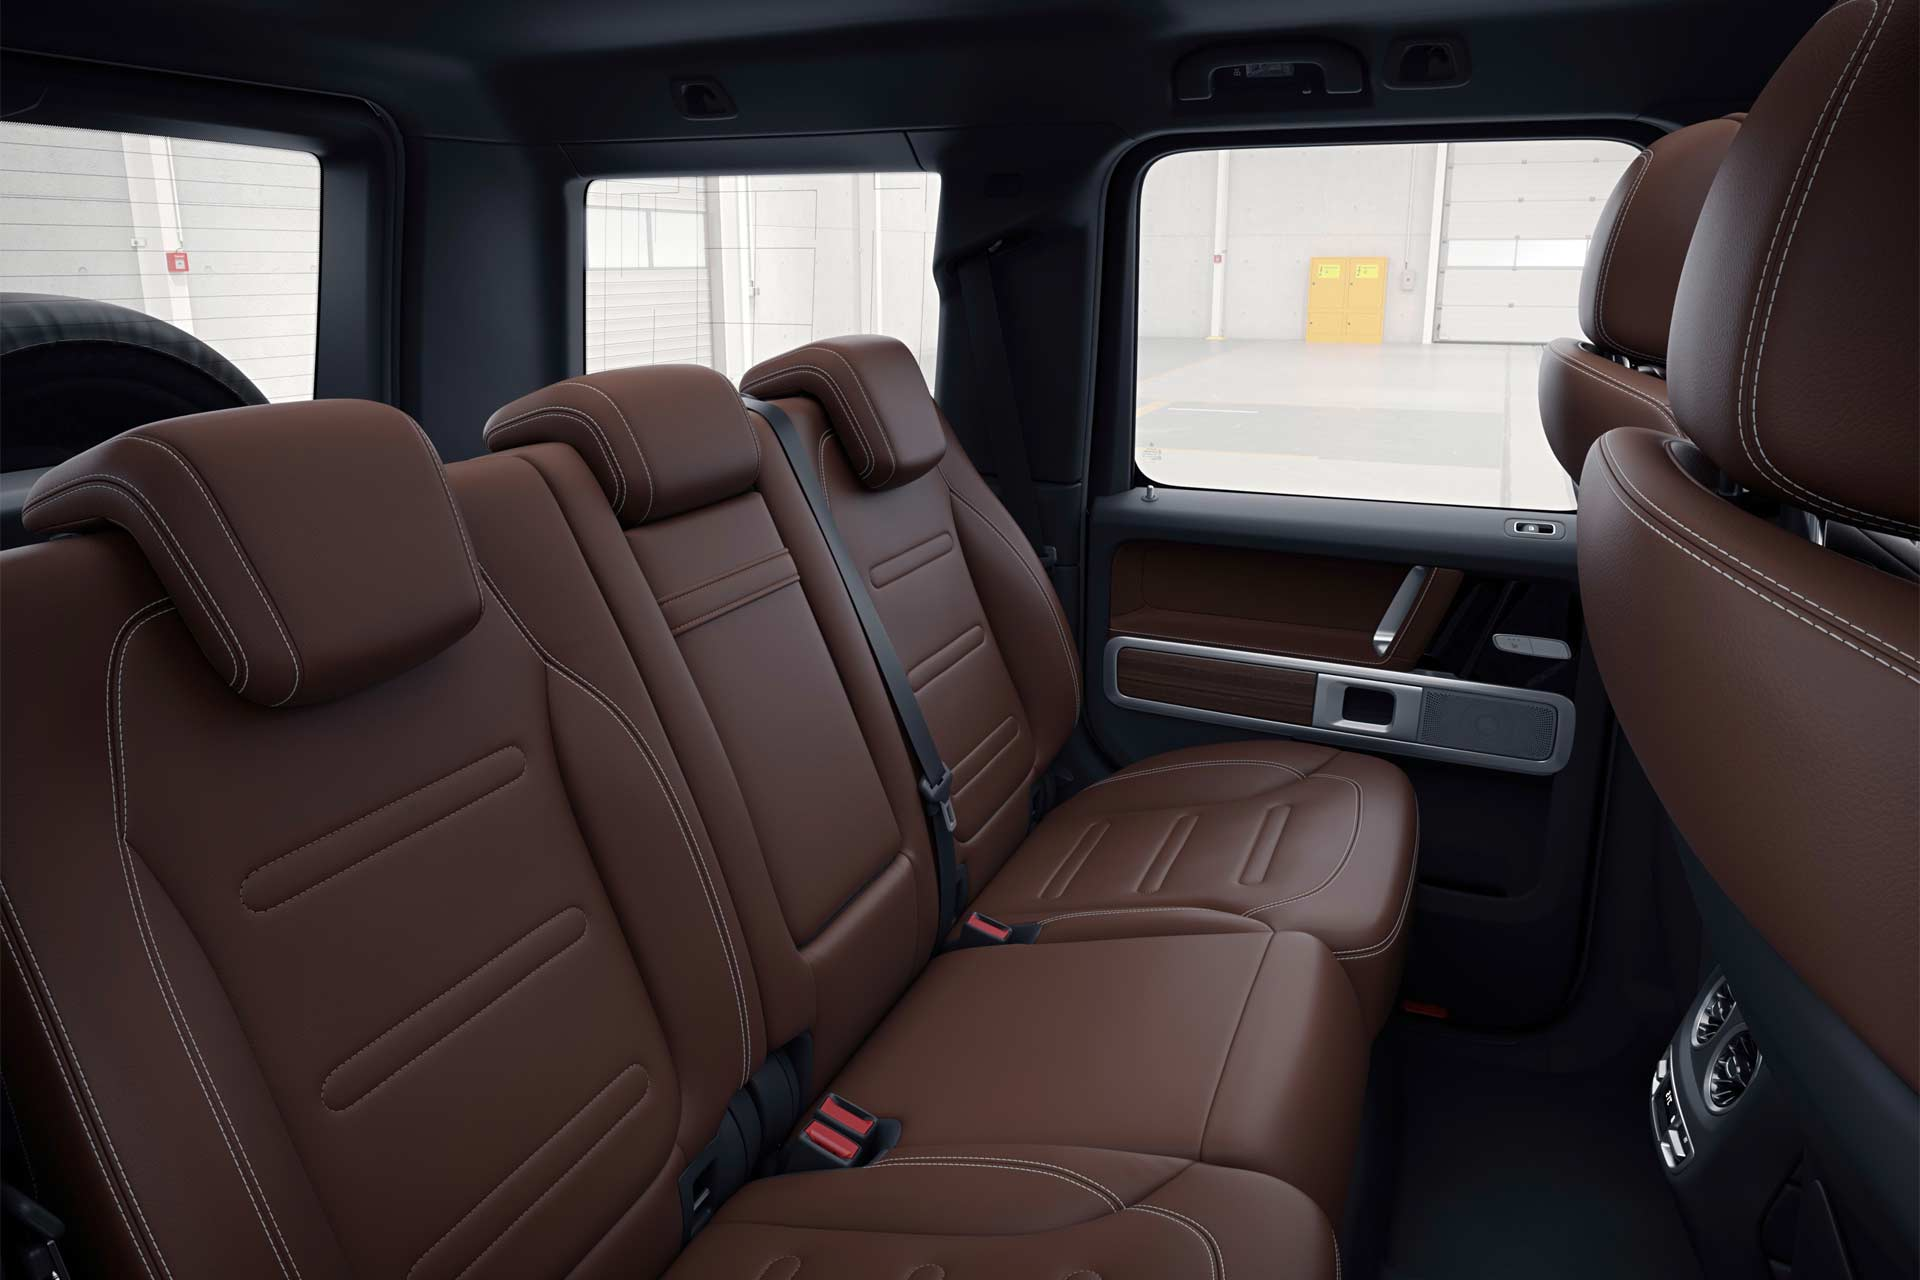 Next-gen Mercedes-Benz G-Class interiors officially ...